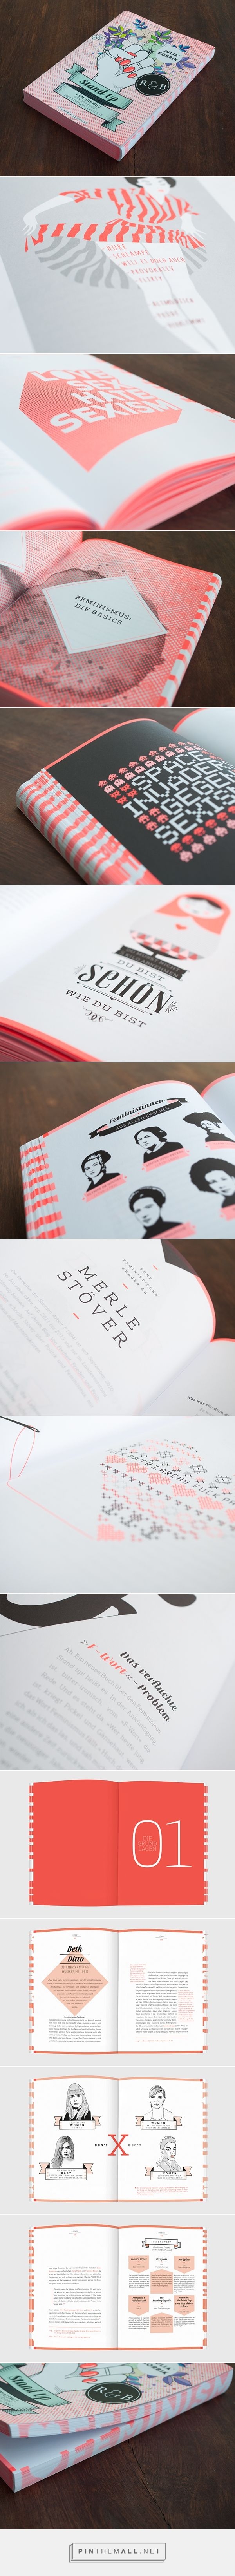 Stand Up by Studio Grau, a handbook on feminism. Fantastic editorial design…